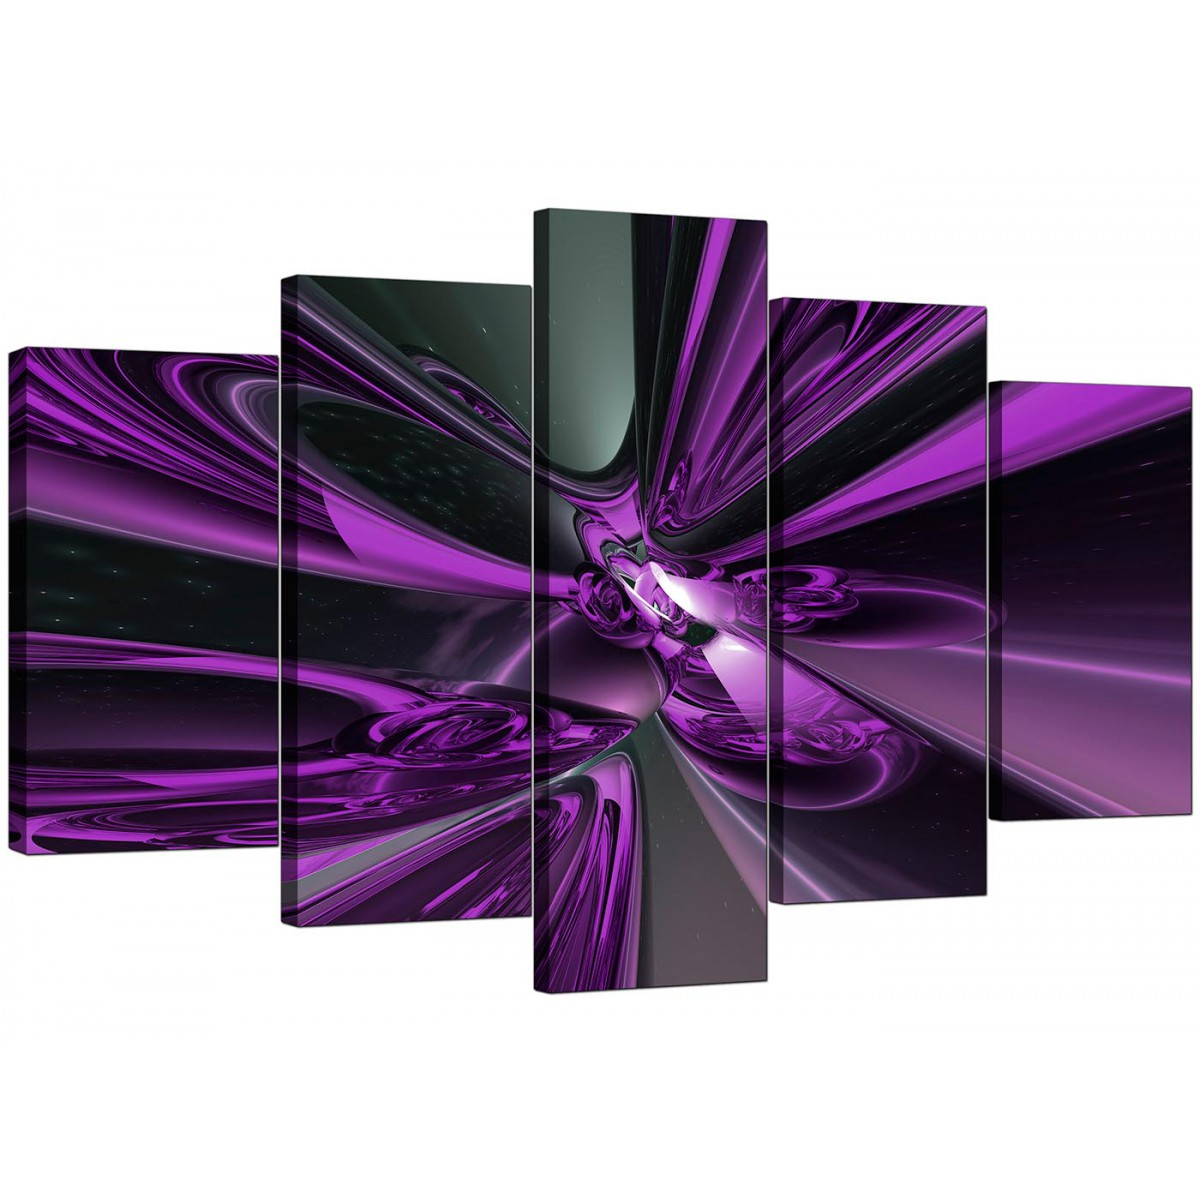 dark teal sofa hospital bed extra large purple abstract canvas prints uk - 5 piece